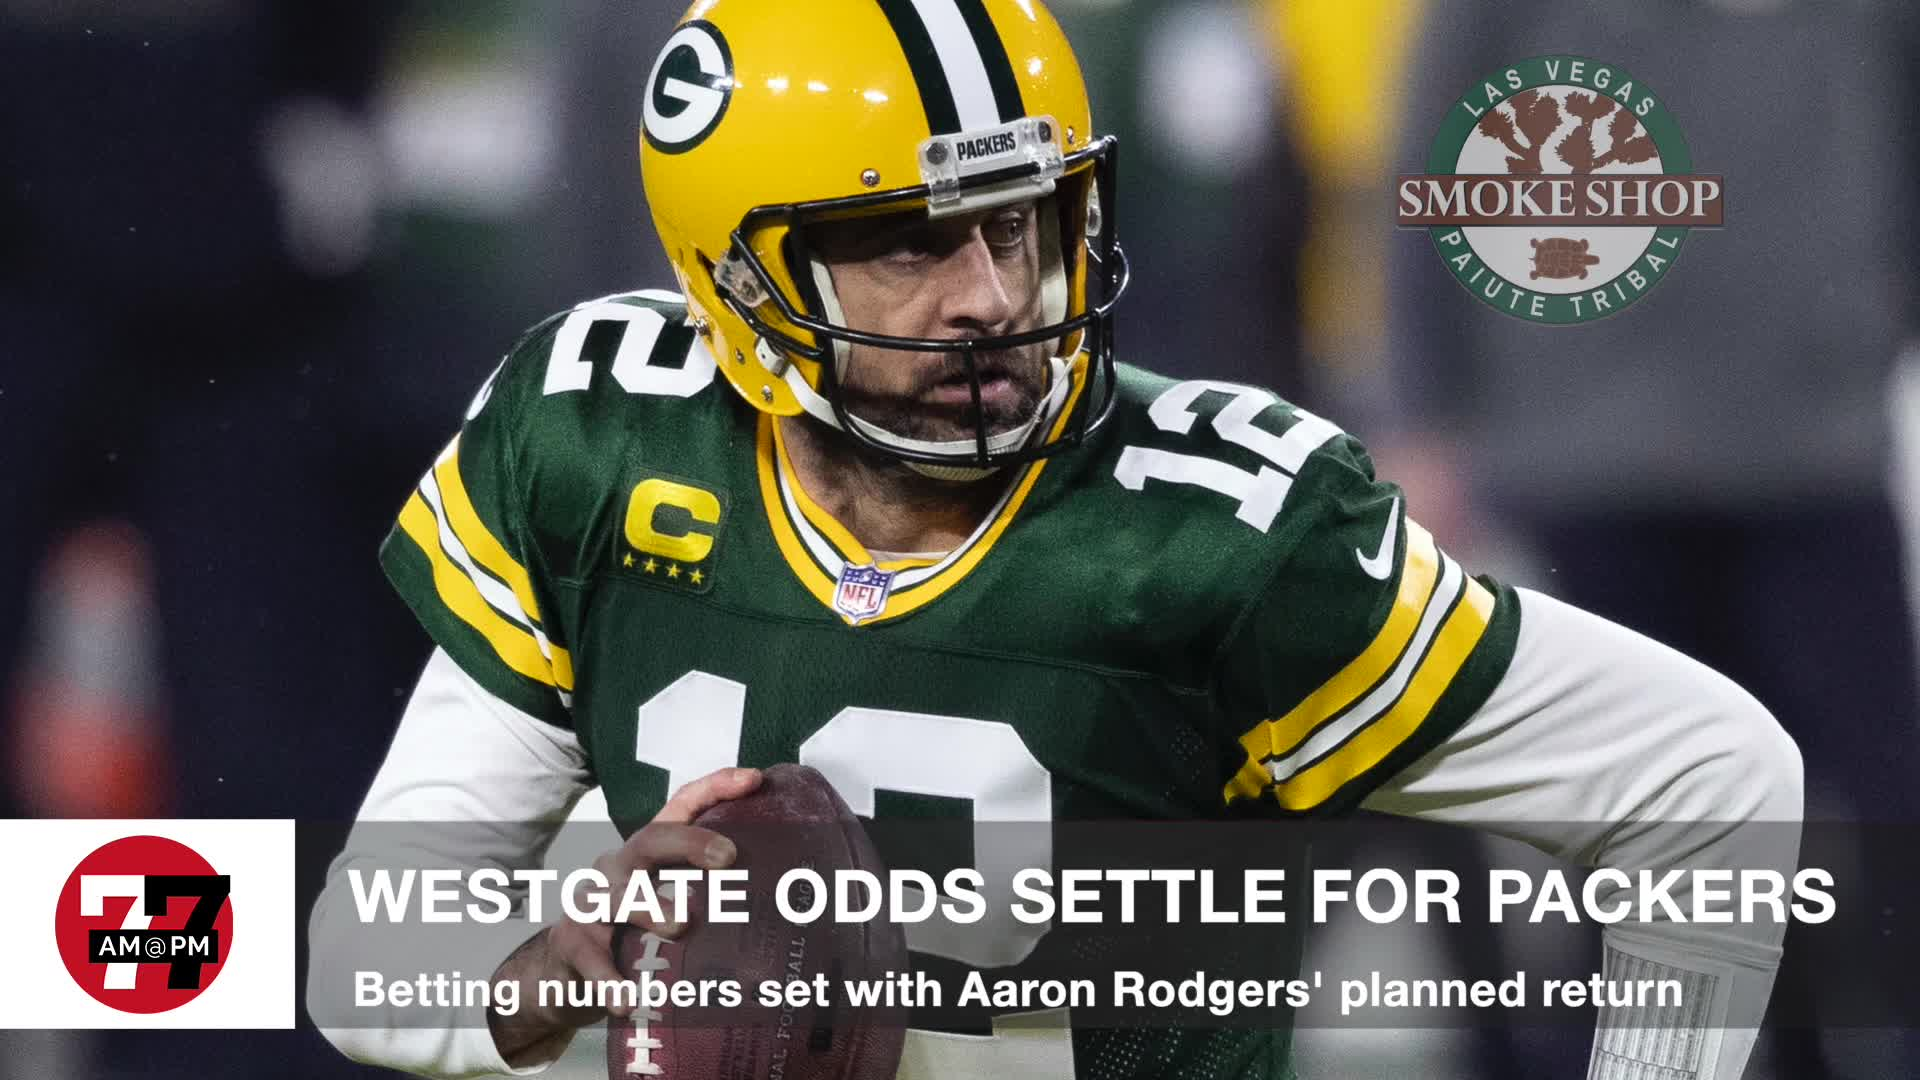 7@7PM Westgate Odds Settle for Packers